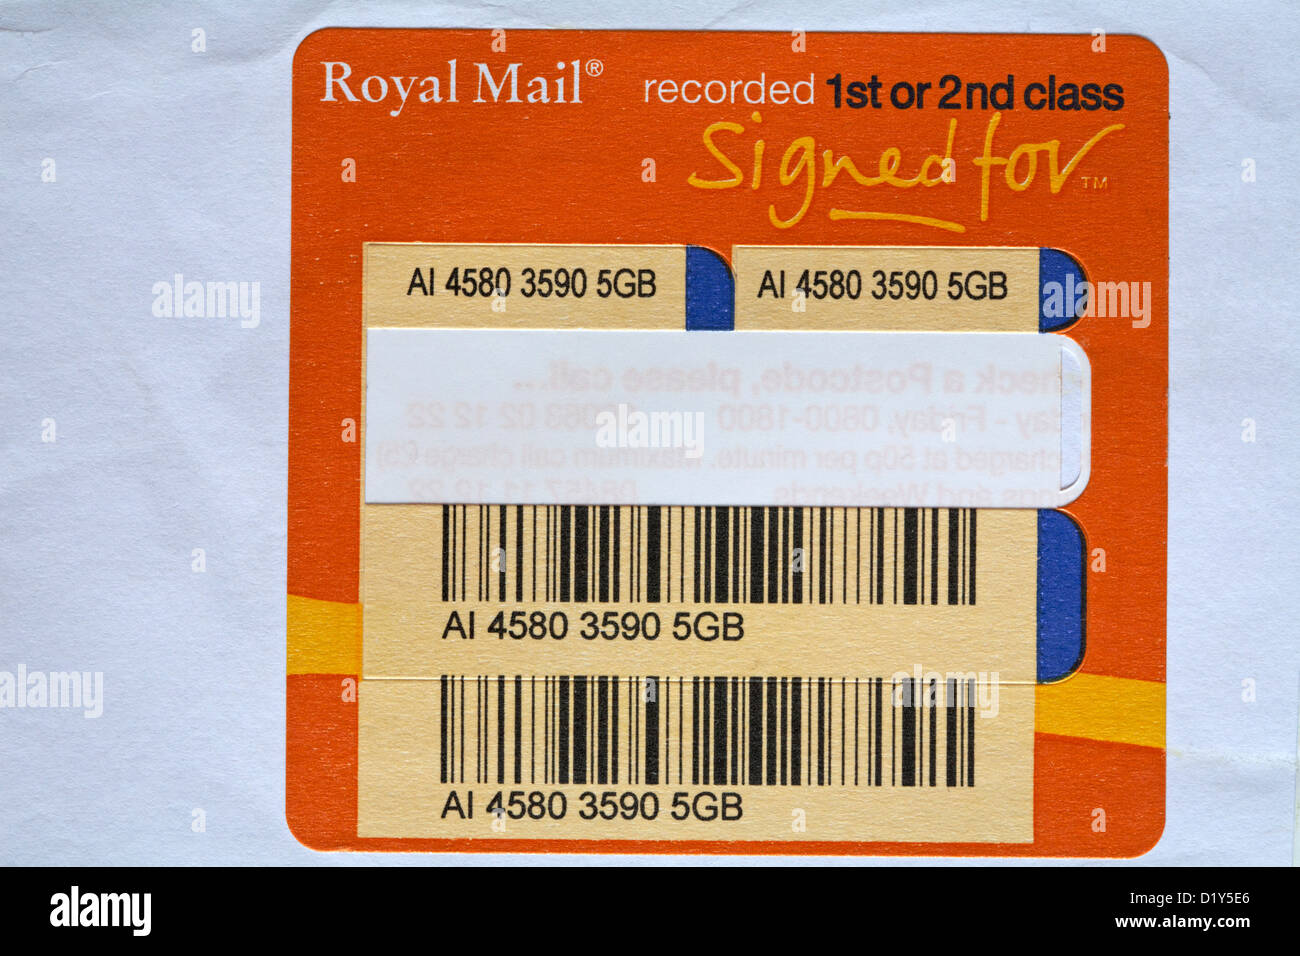 Royal Mail recorded label on envelope - Stock Image